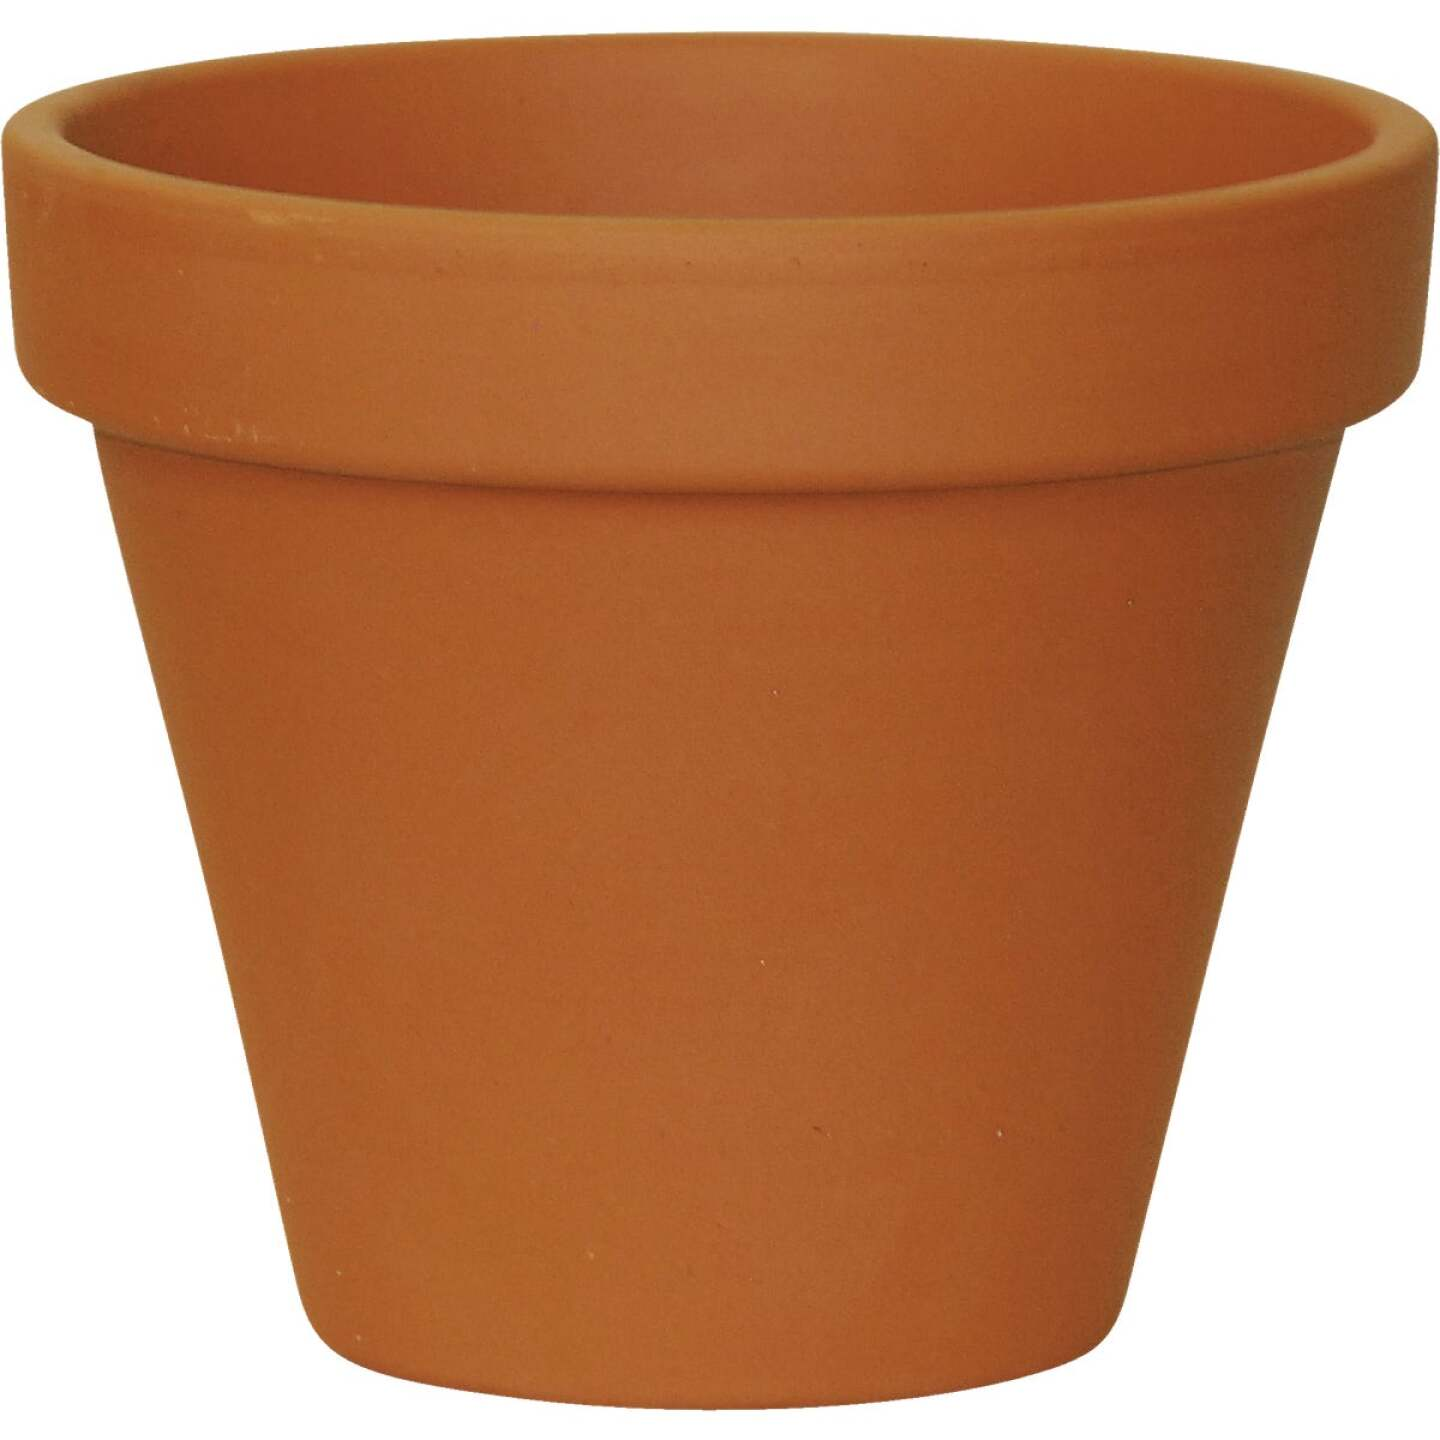 Ceramo 3-3/4 In. H. x 4-1/2 In. Dia. Terracotta Clay Standard Flower Pot Image 1